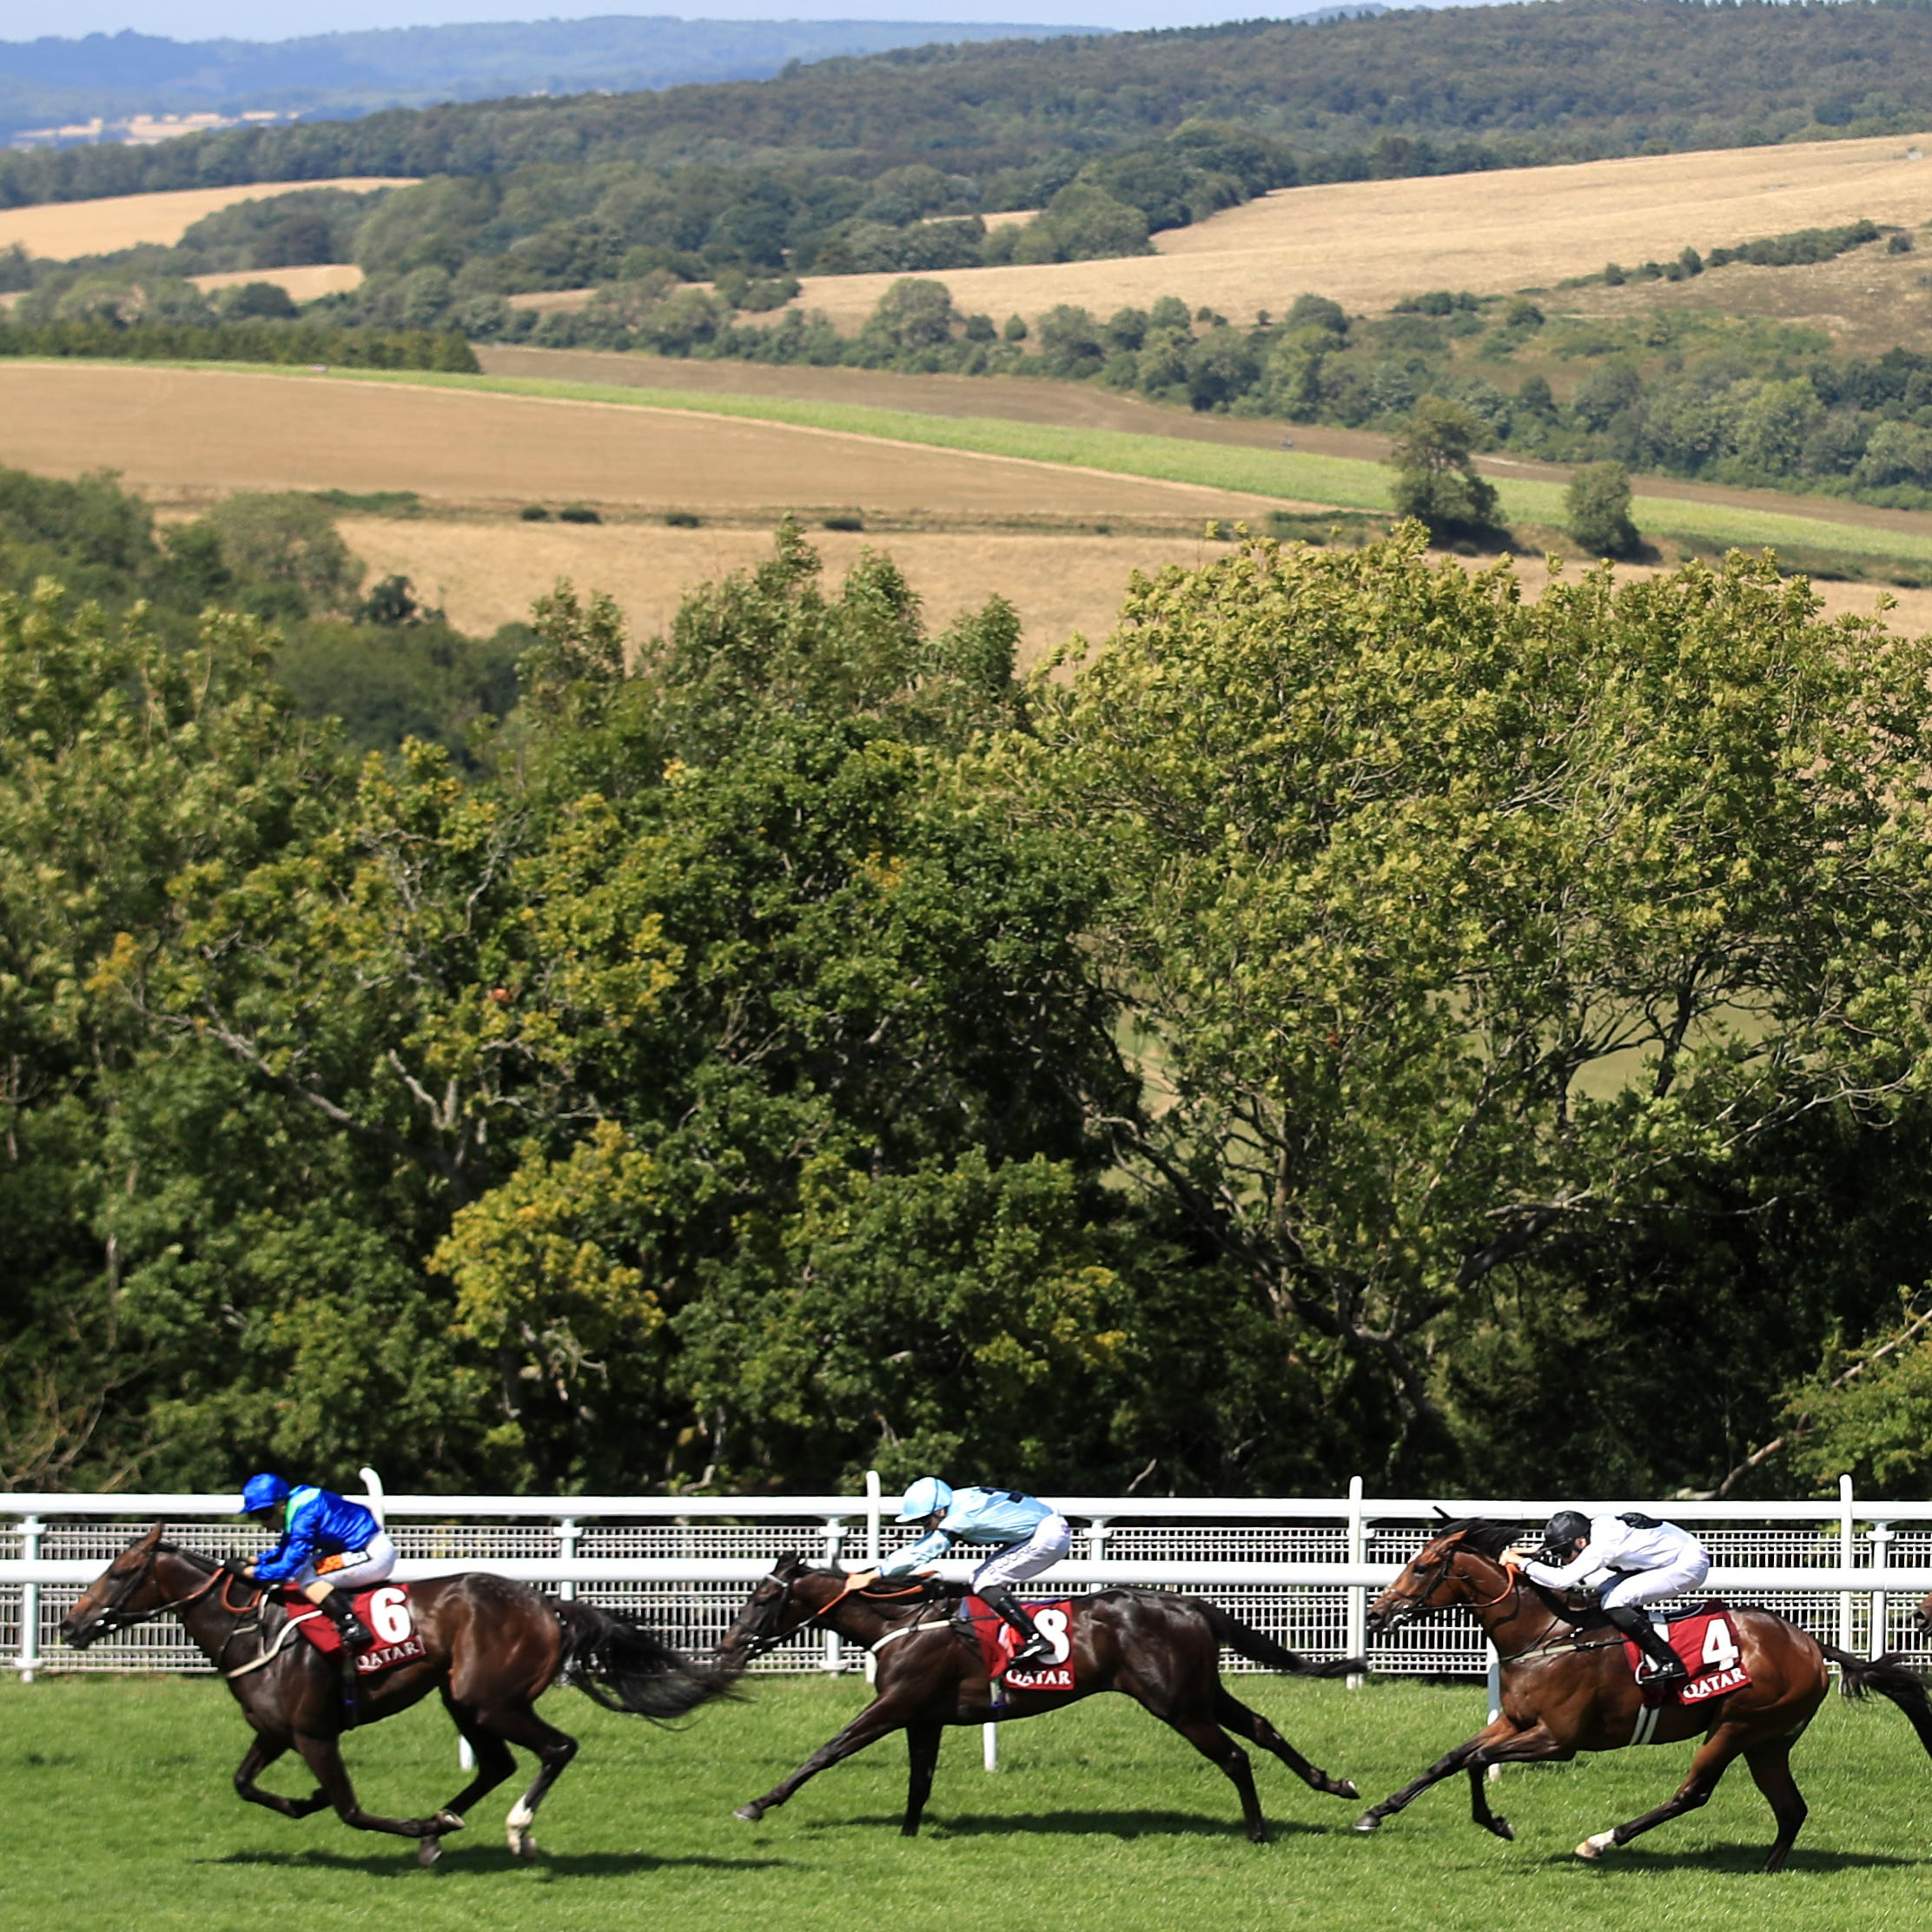 Dark Vision (left) comes home to win the Vintage Stakes at Goodwood